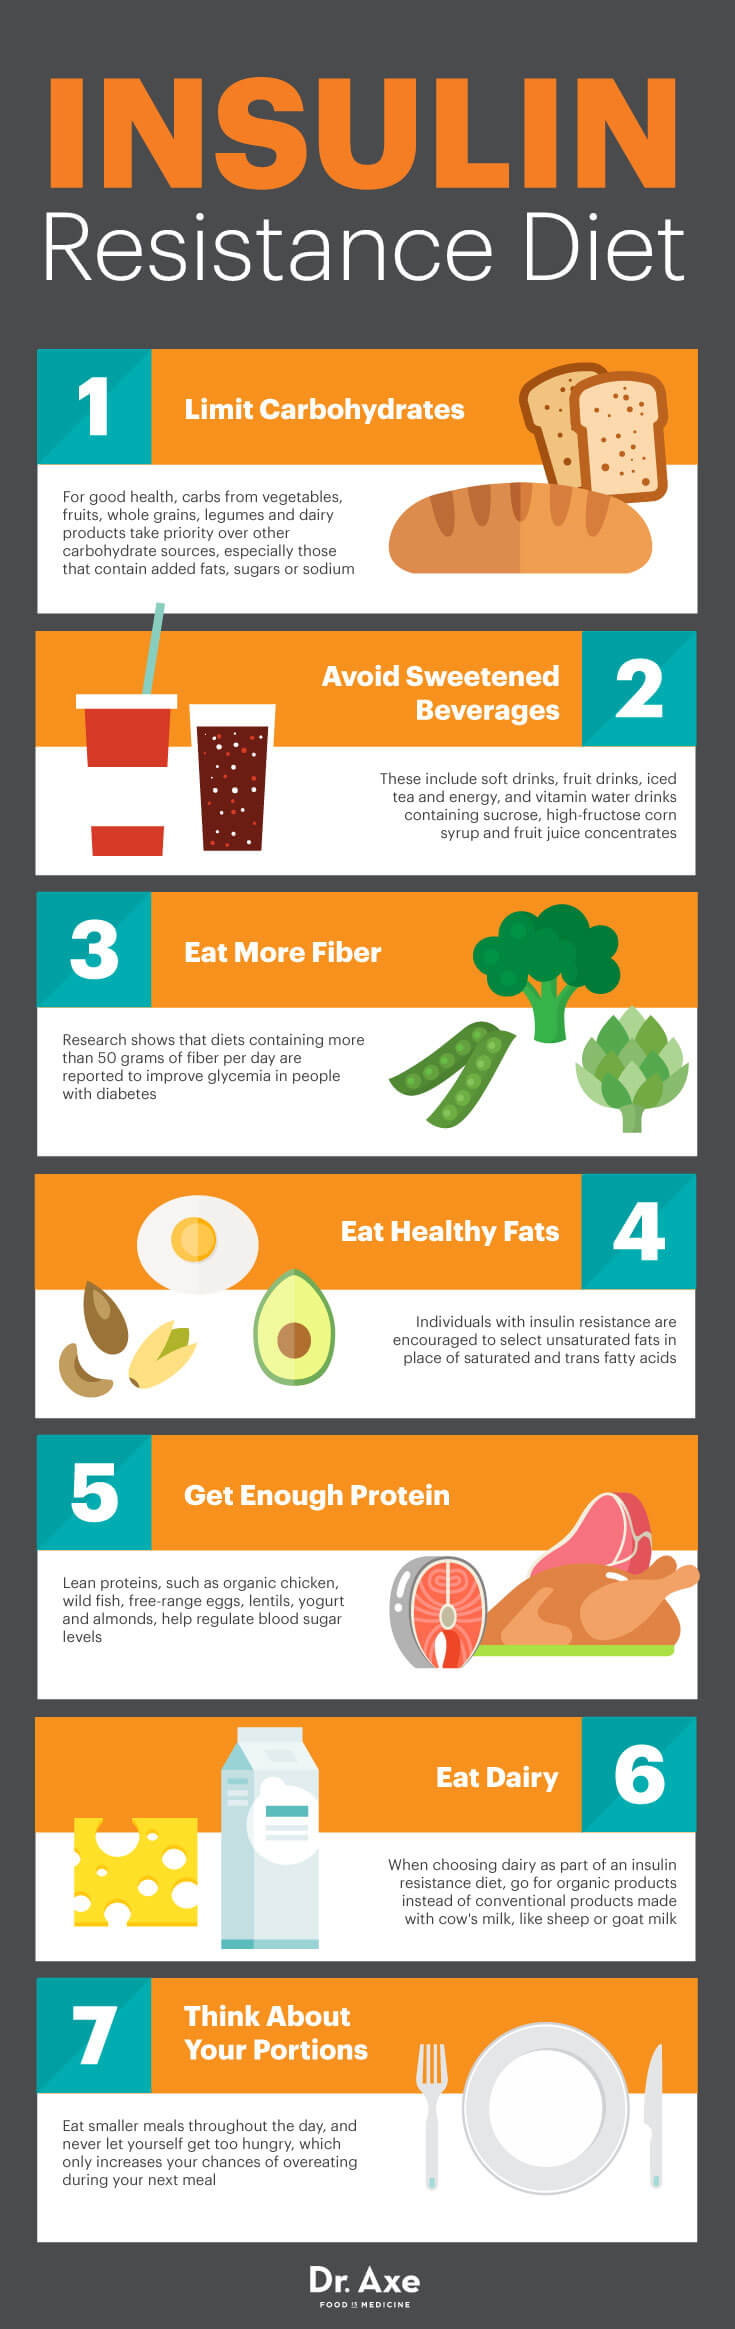 Sugar And Insulin Resistance: Nutrition Tips Infographic